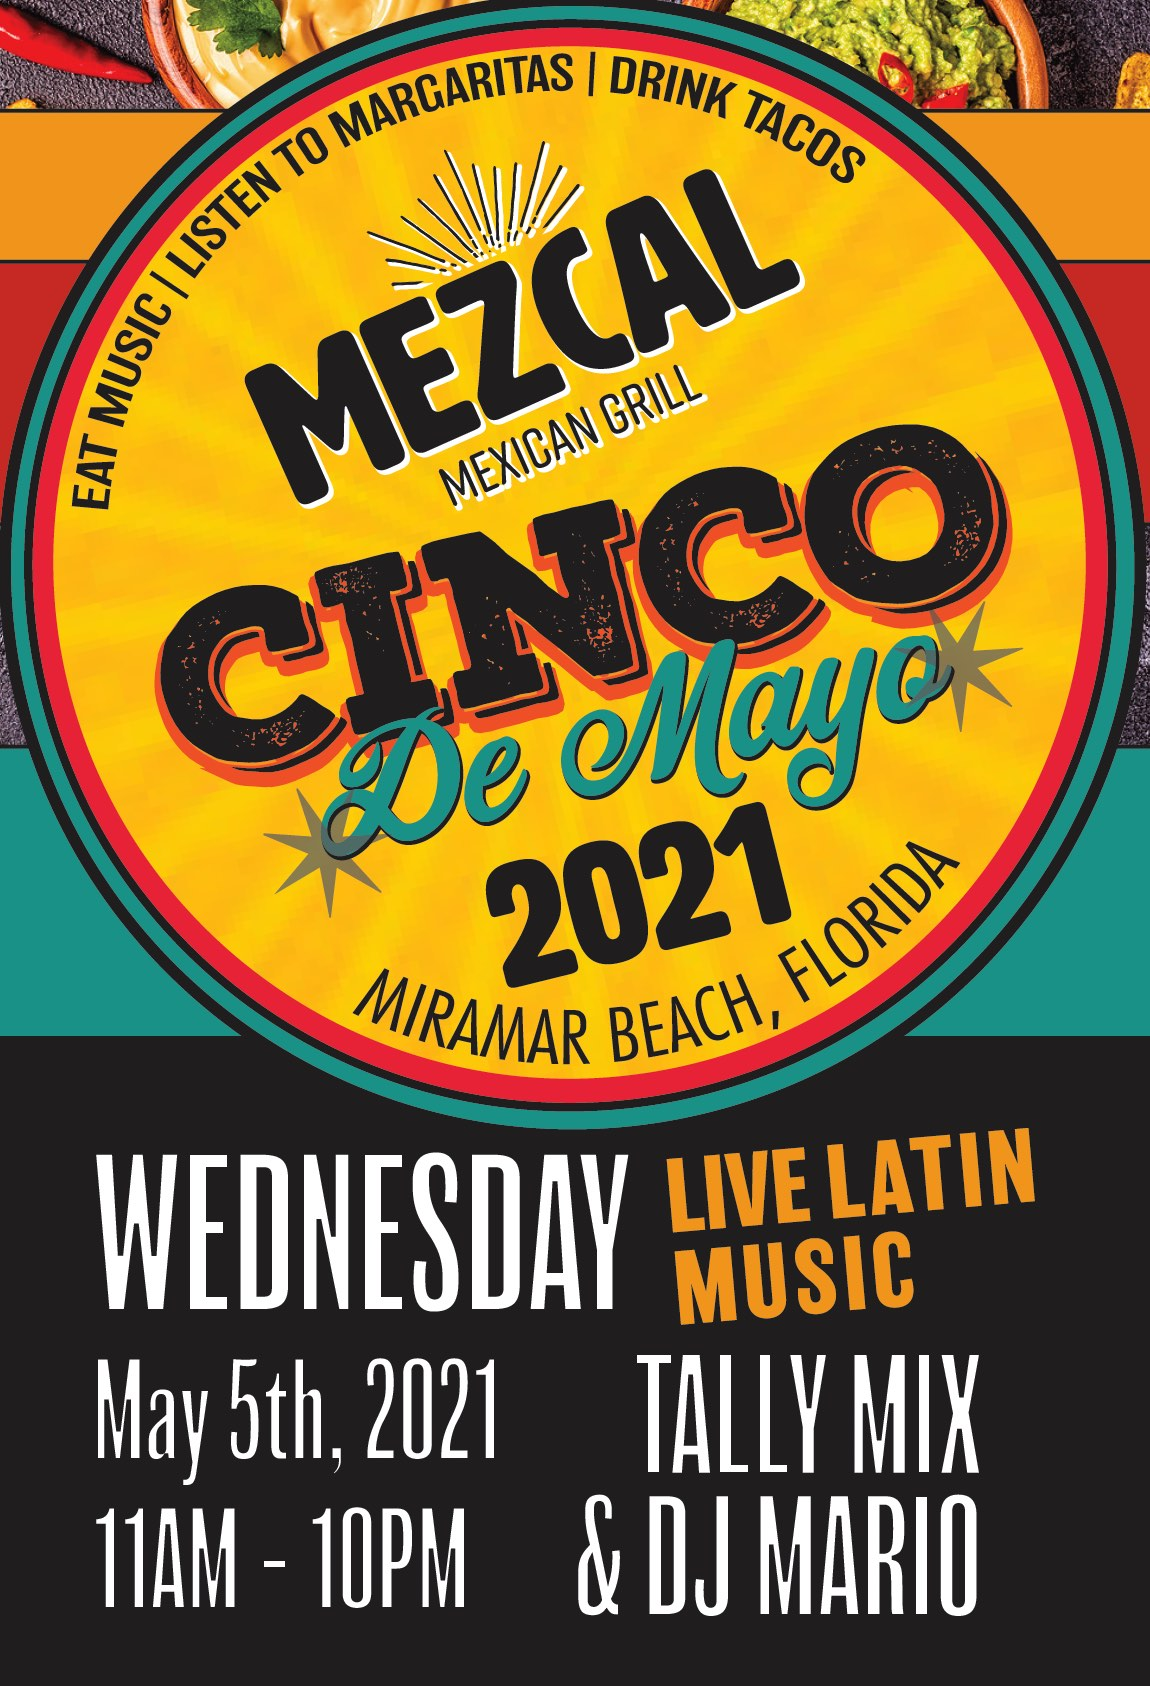 2021 Cinco De Mayo Mezcal Mexican Grill | Mezcal Mexican Grill Events and Entertainment